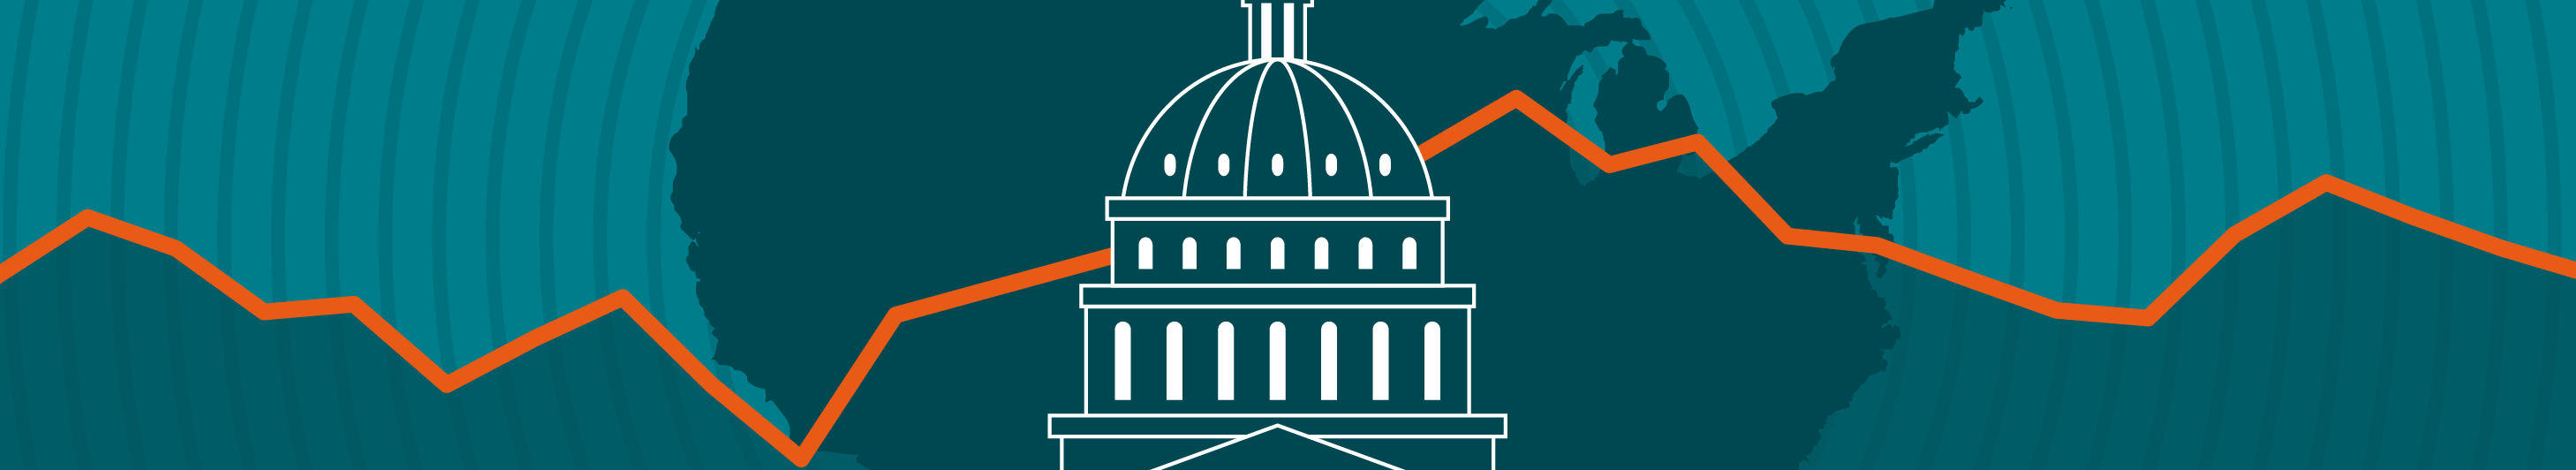 illustration of a capital building on top of an outline of the United States